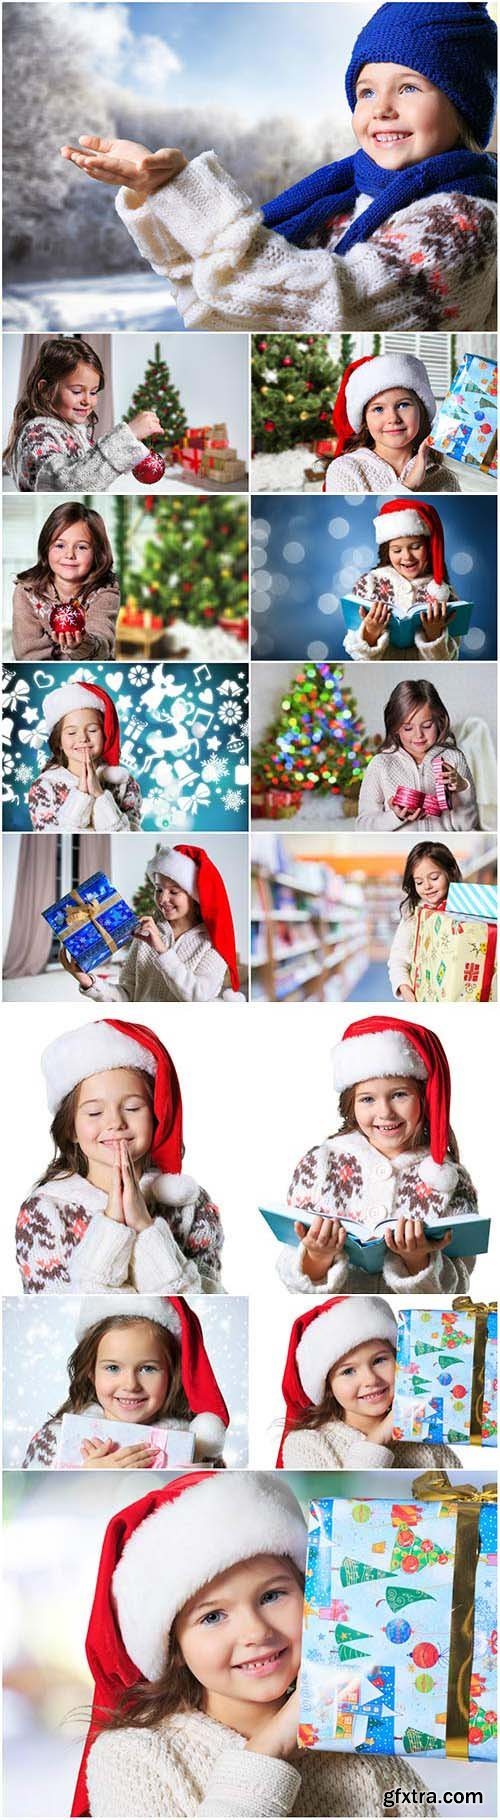 New Year and Christmas stock photos 84